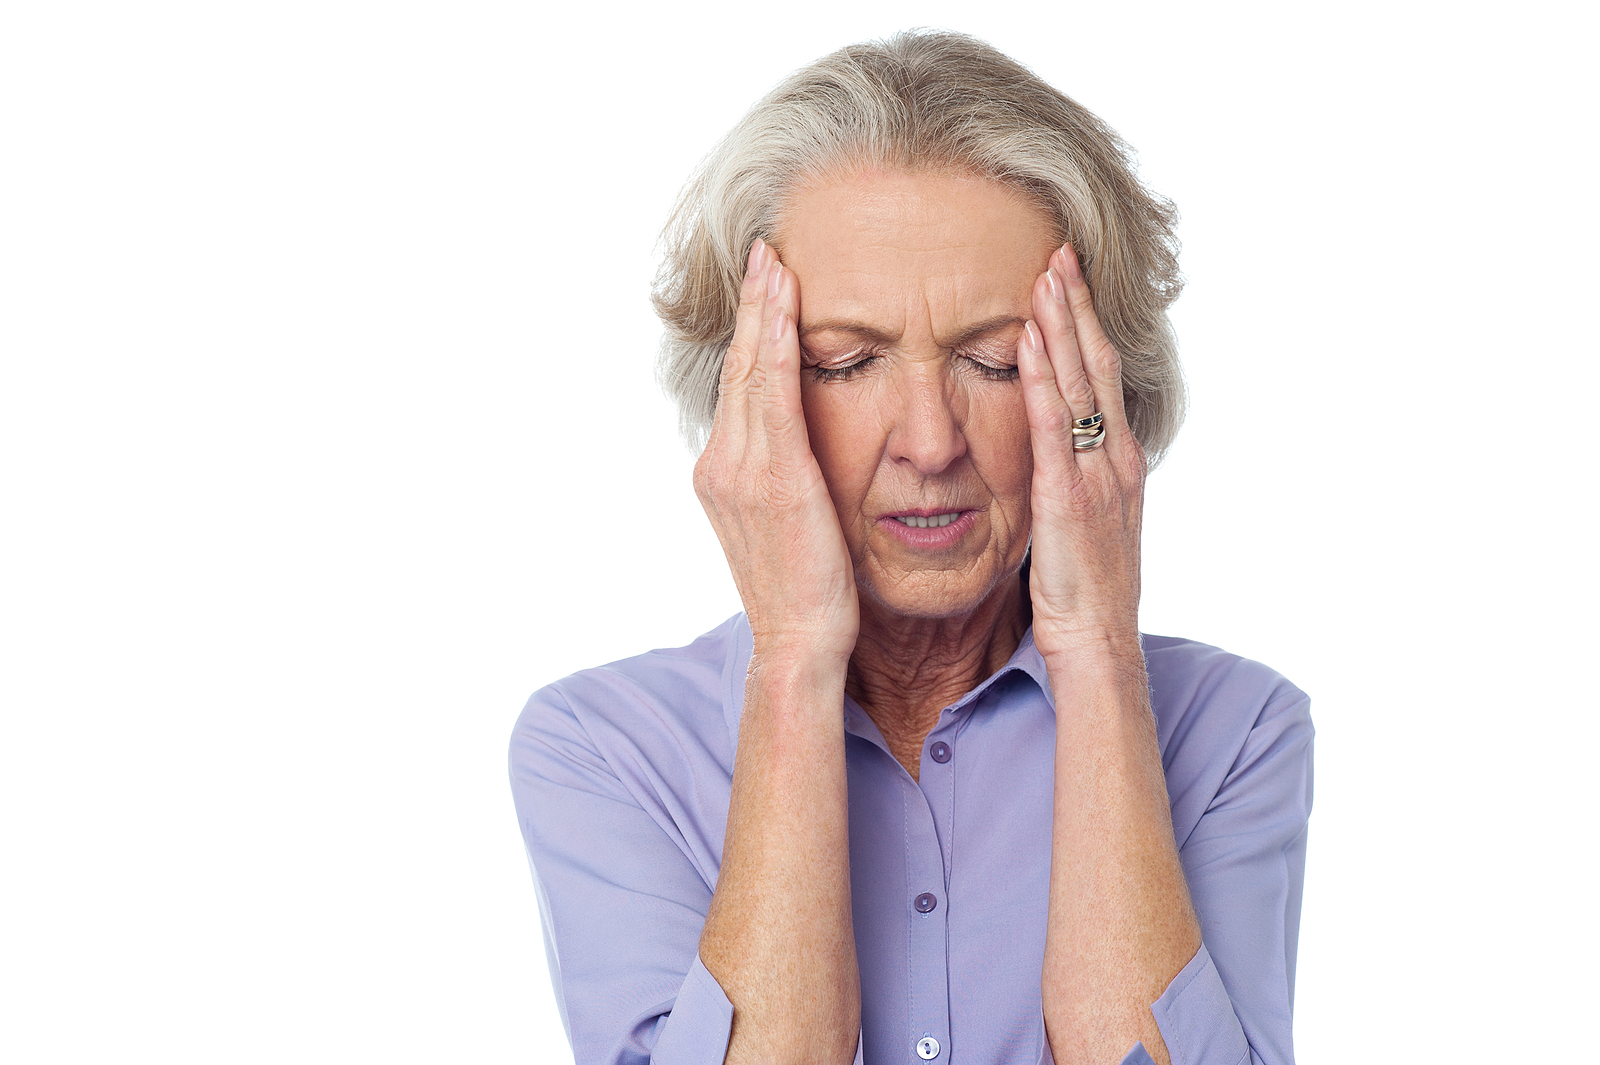 Can A Chiropractor Help With Migraines